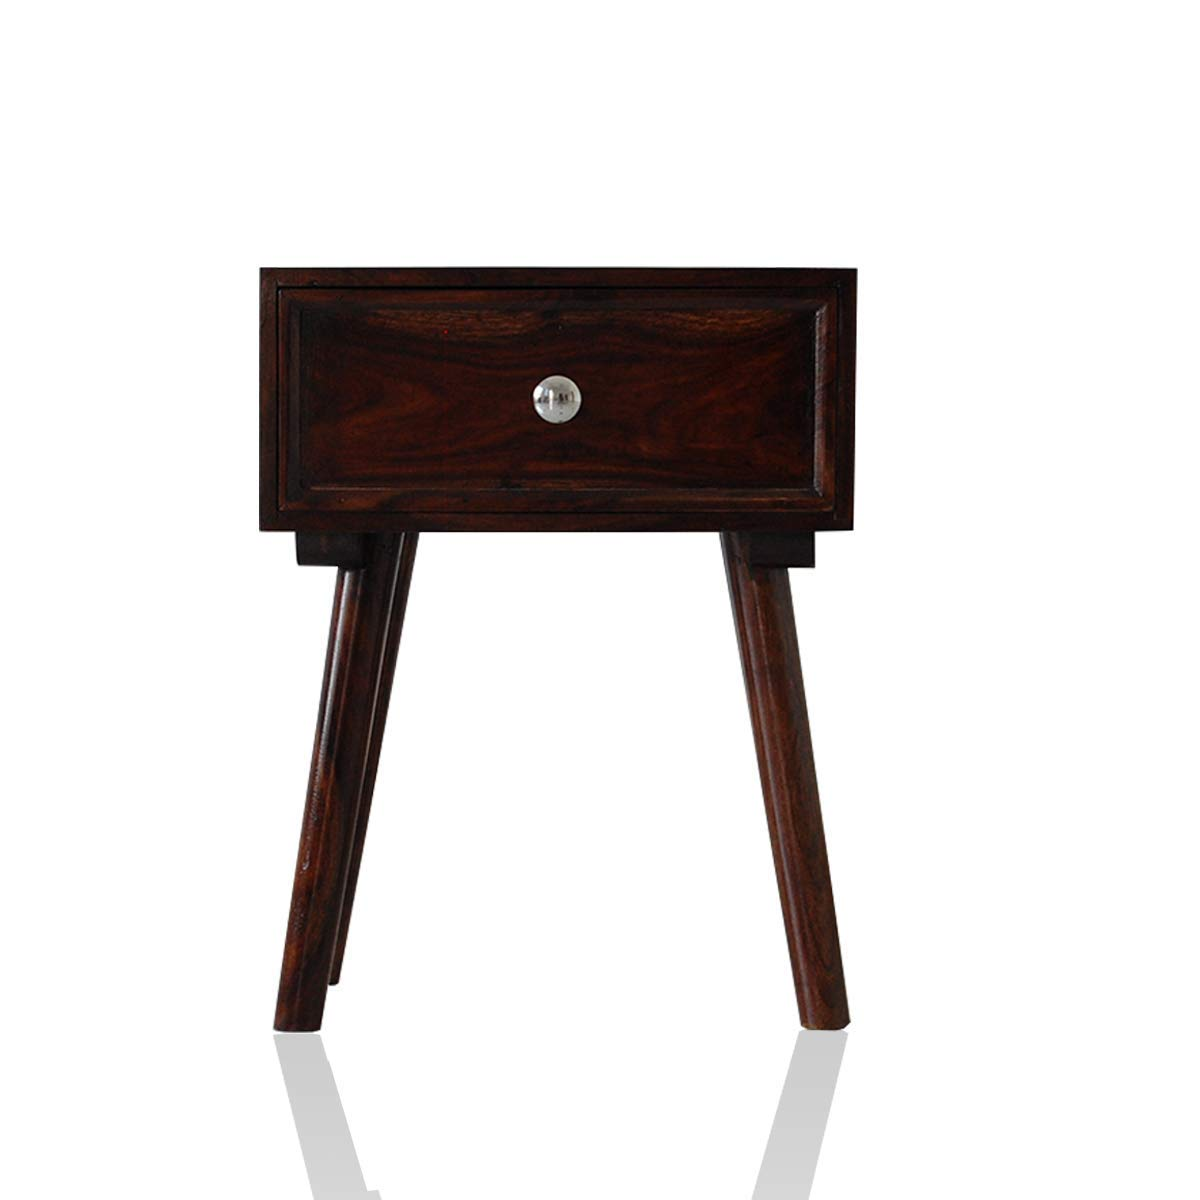 Solid Wood Sheesham Bedside Table With One Drawer For Bedroom Living Room Brown